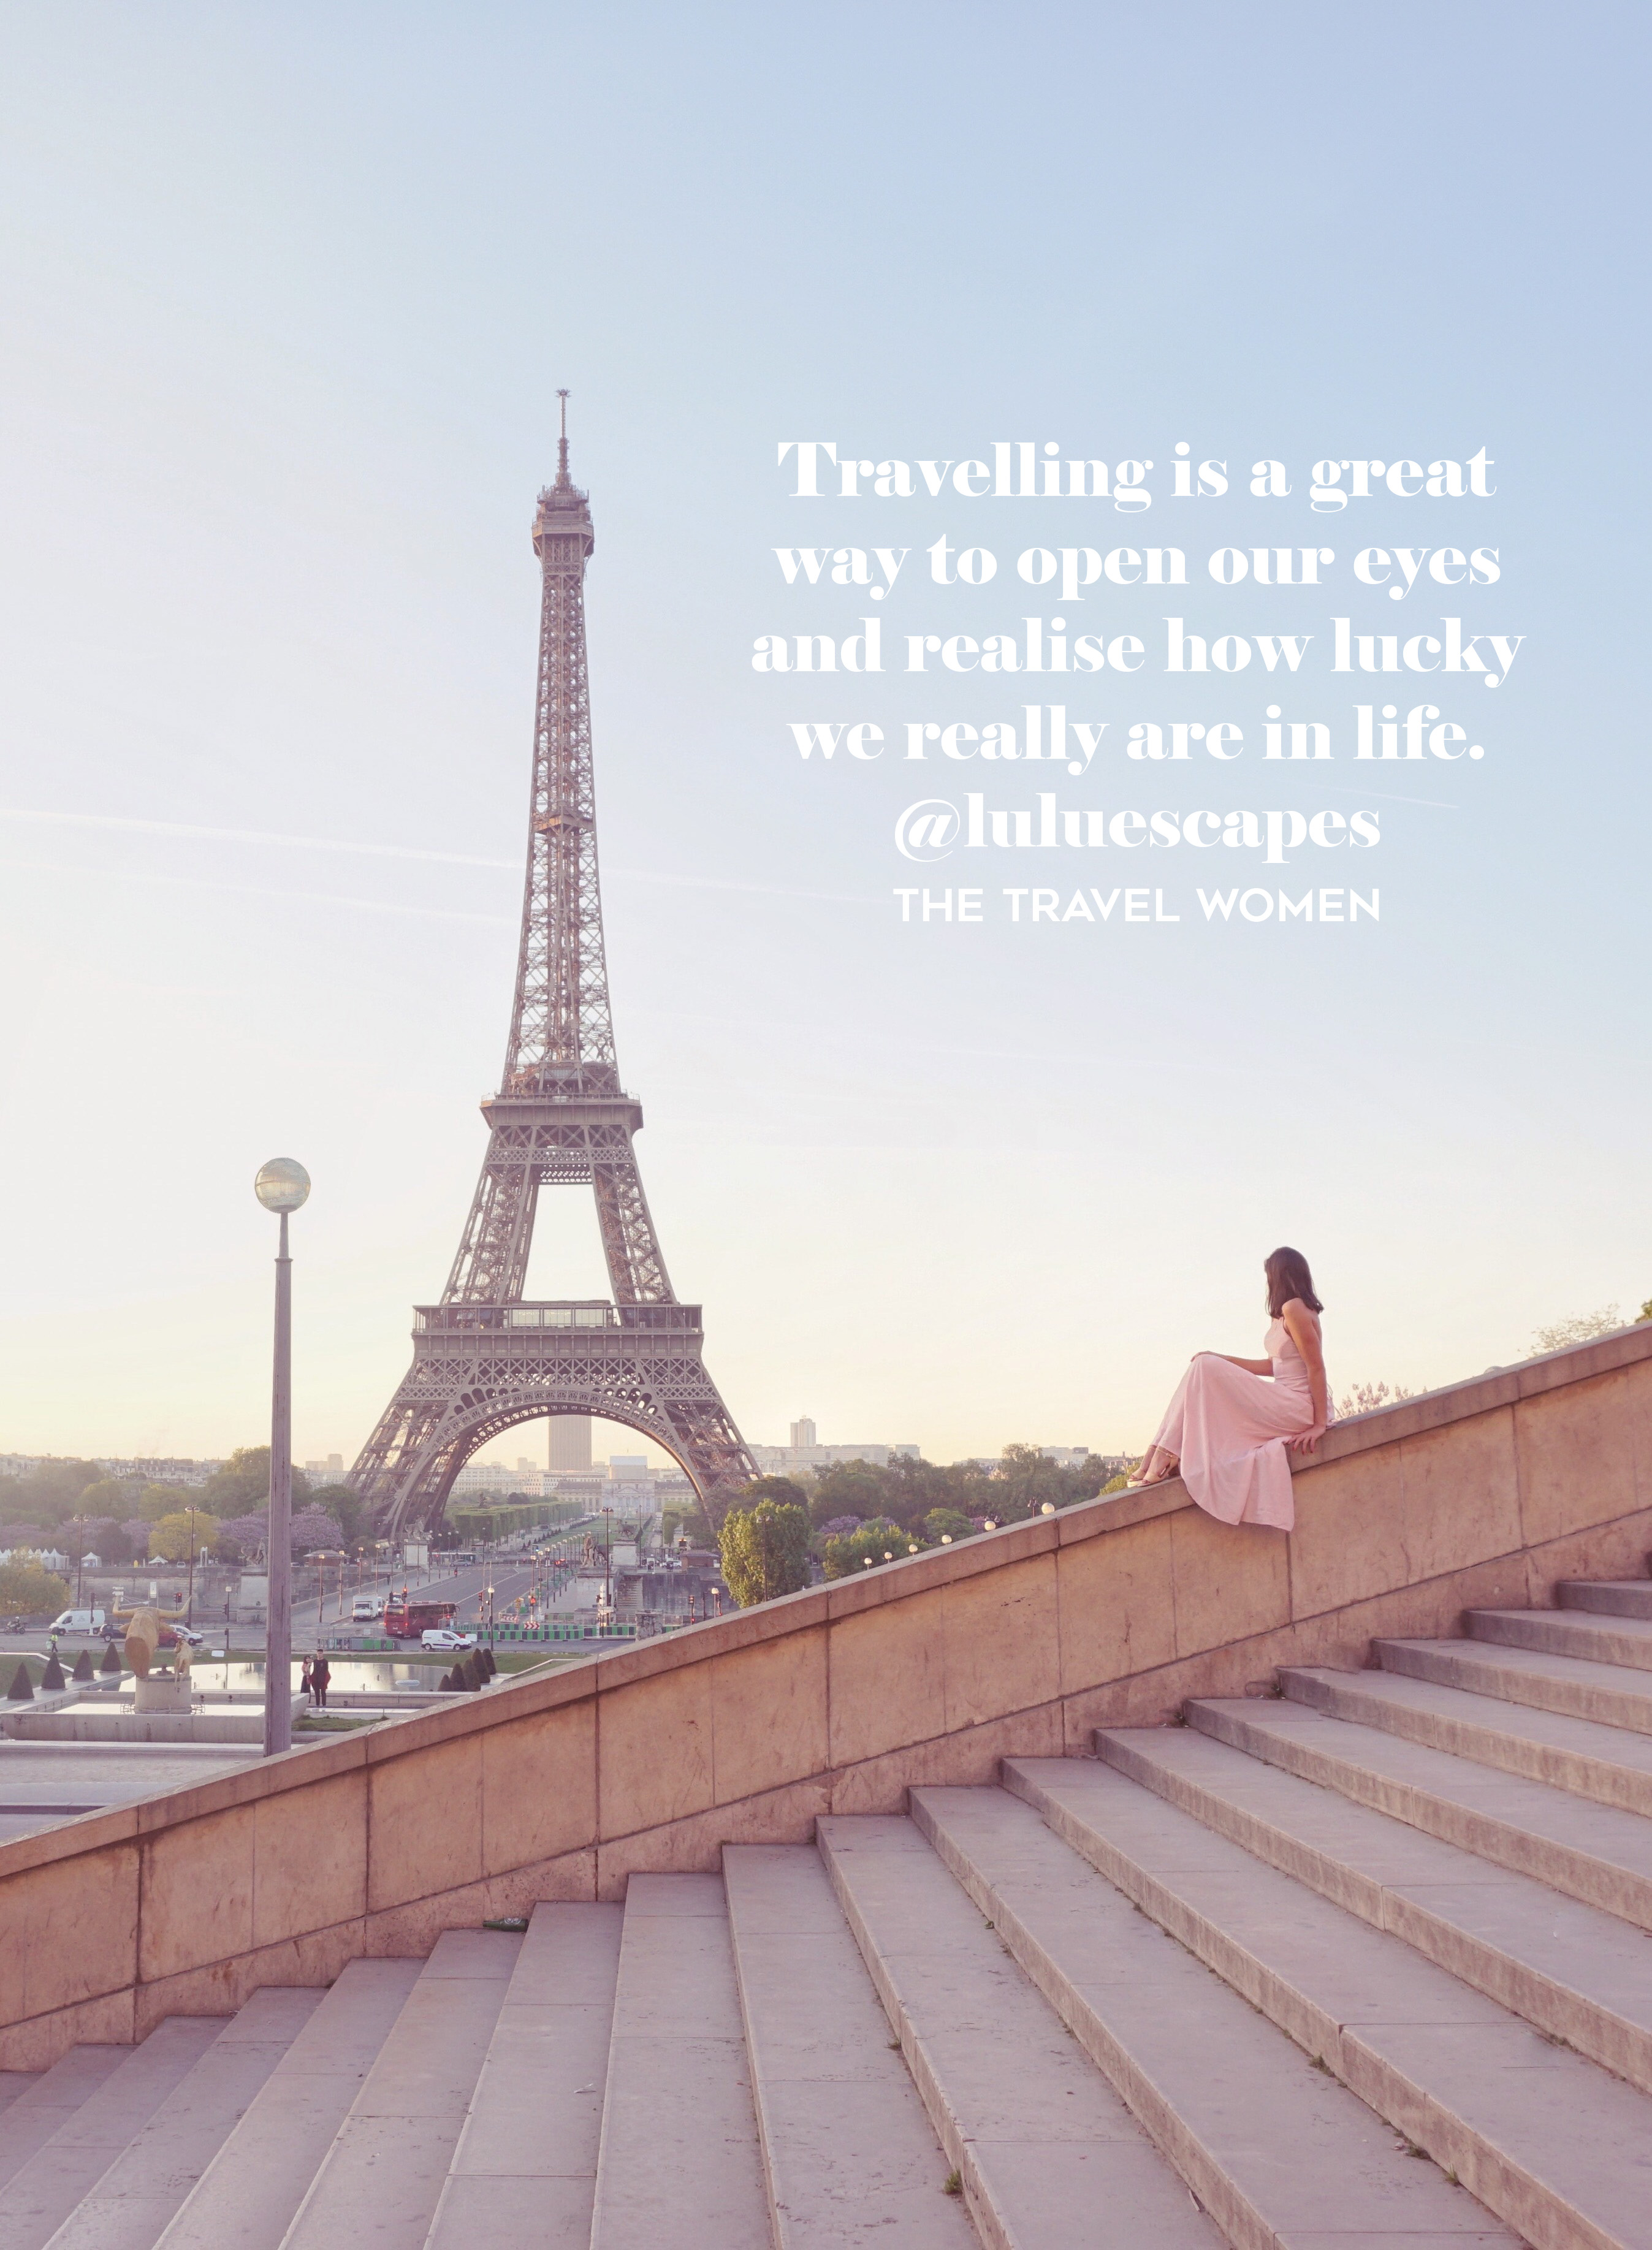 Woman in front of Eiffel Tower in Paris